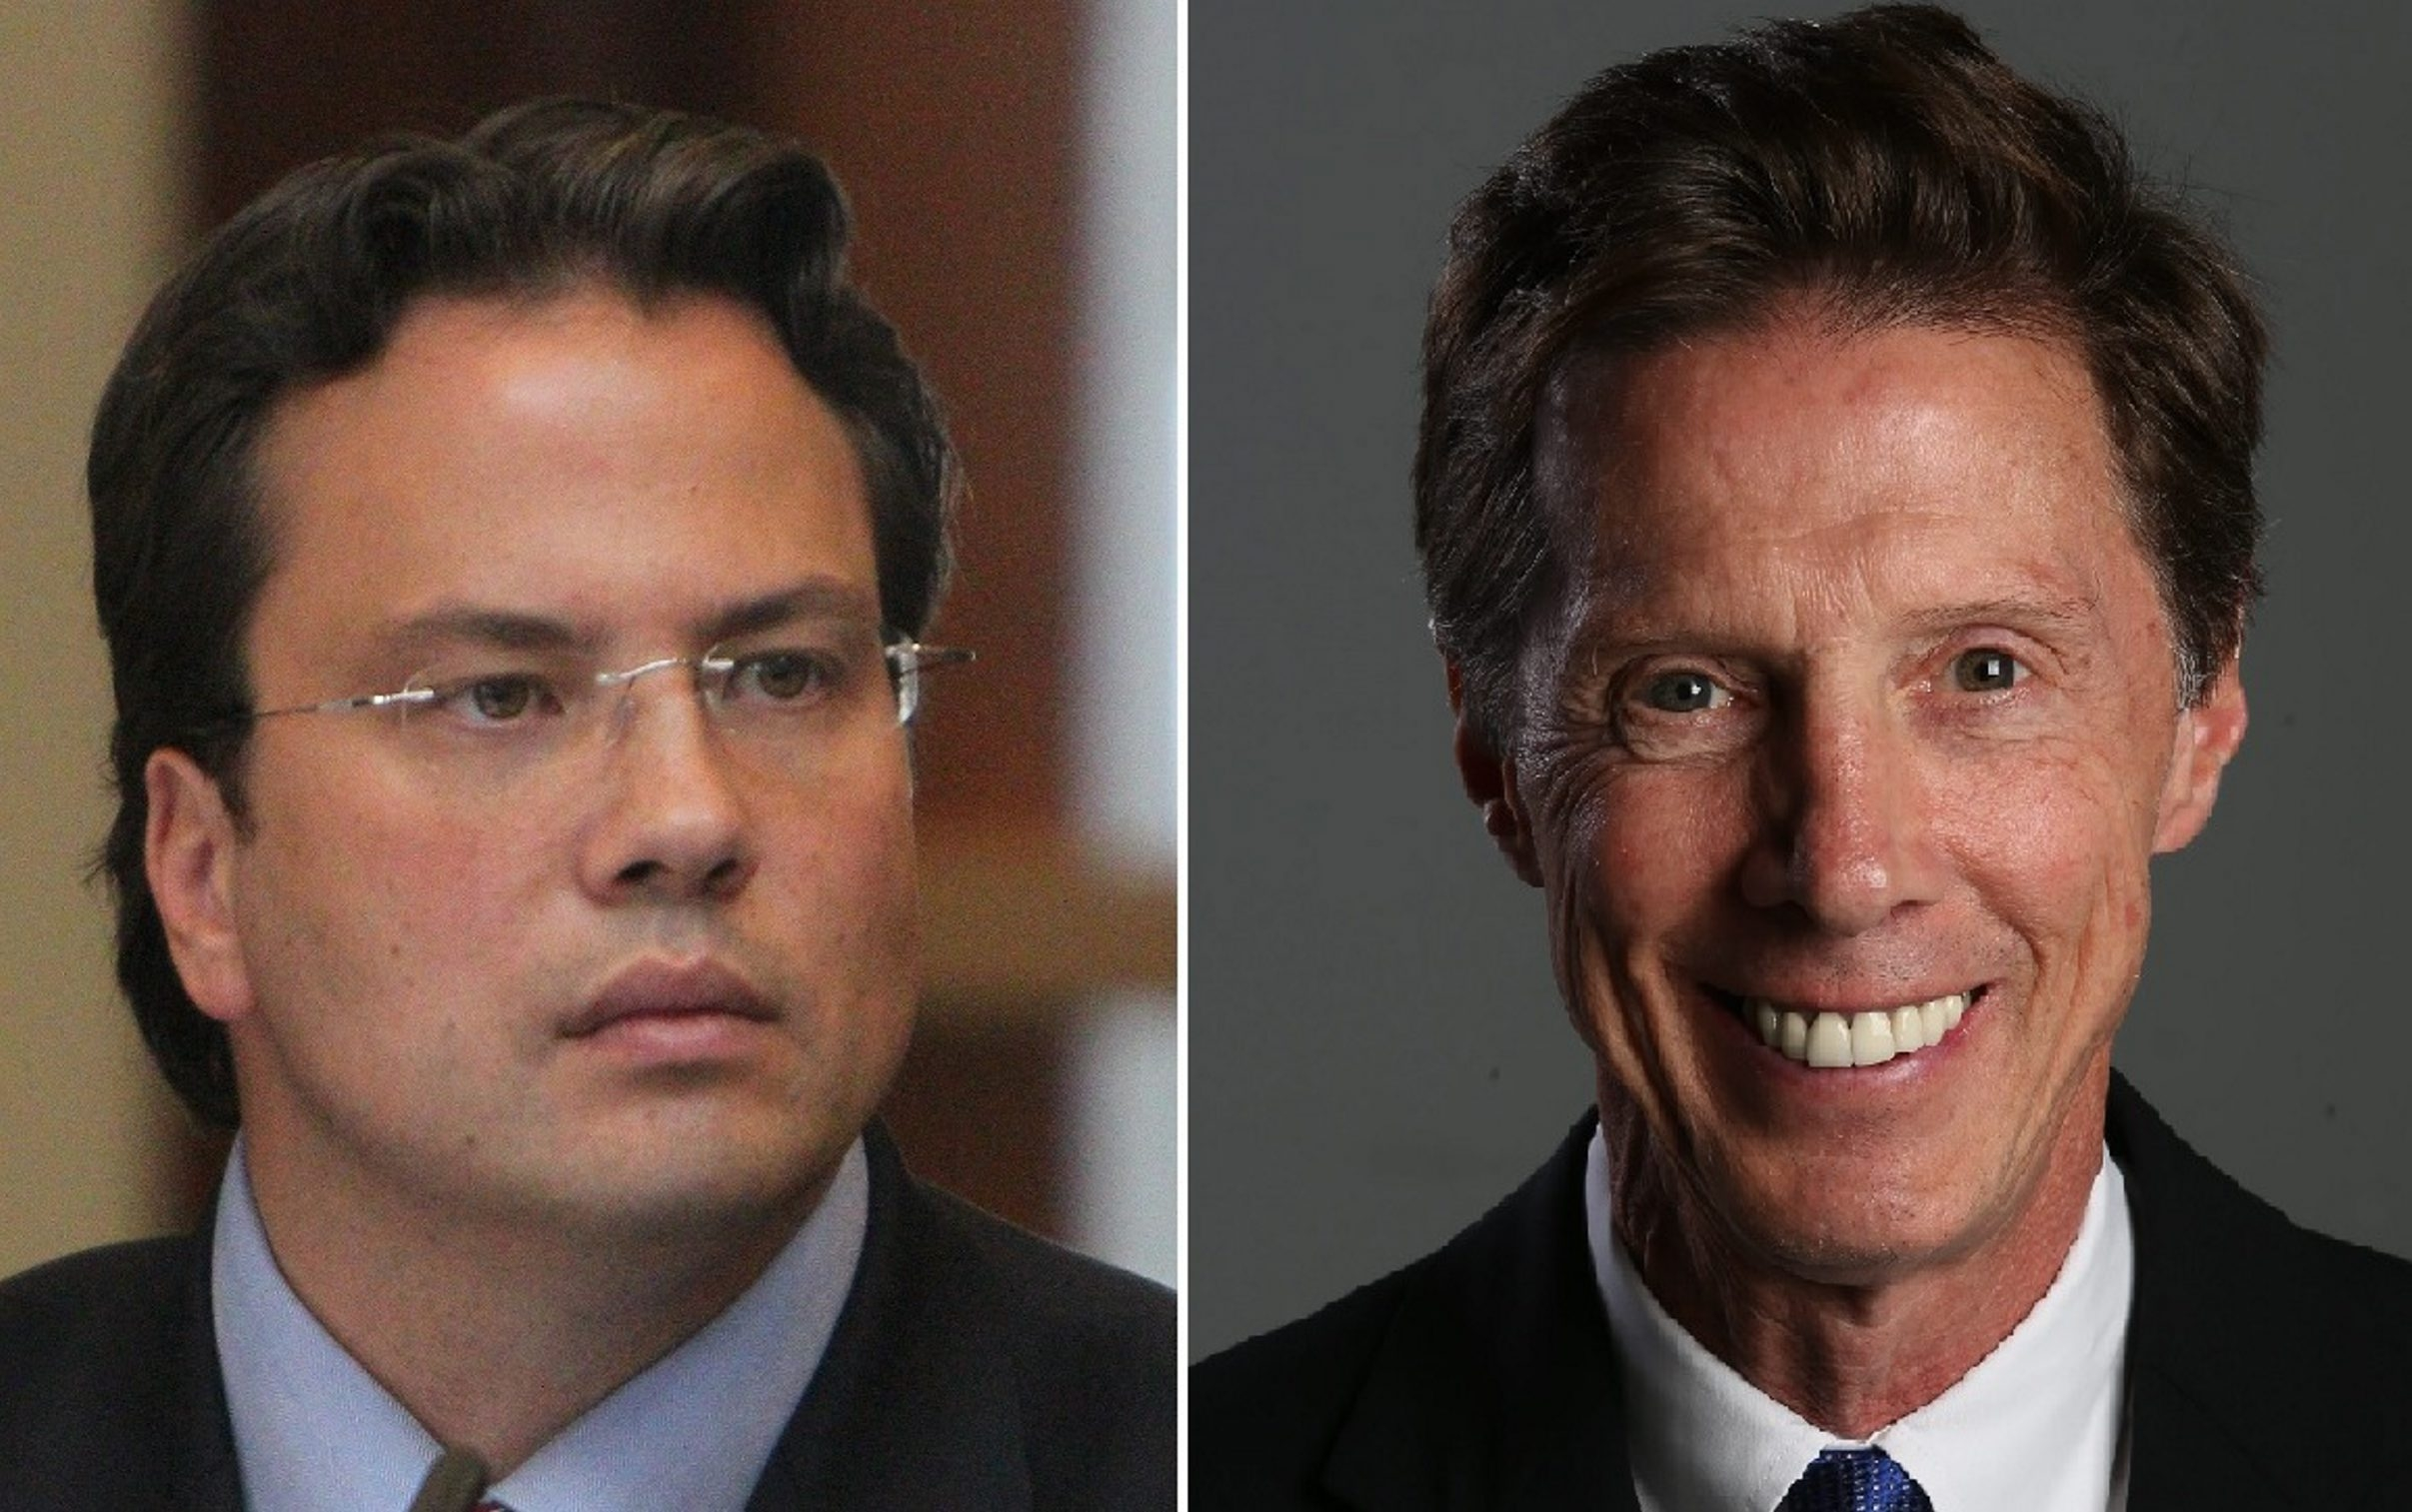 Republican Erie County Comptroller Stefan Mychajliw, left, faces a challenge from Democrat Kevin Gaughan.